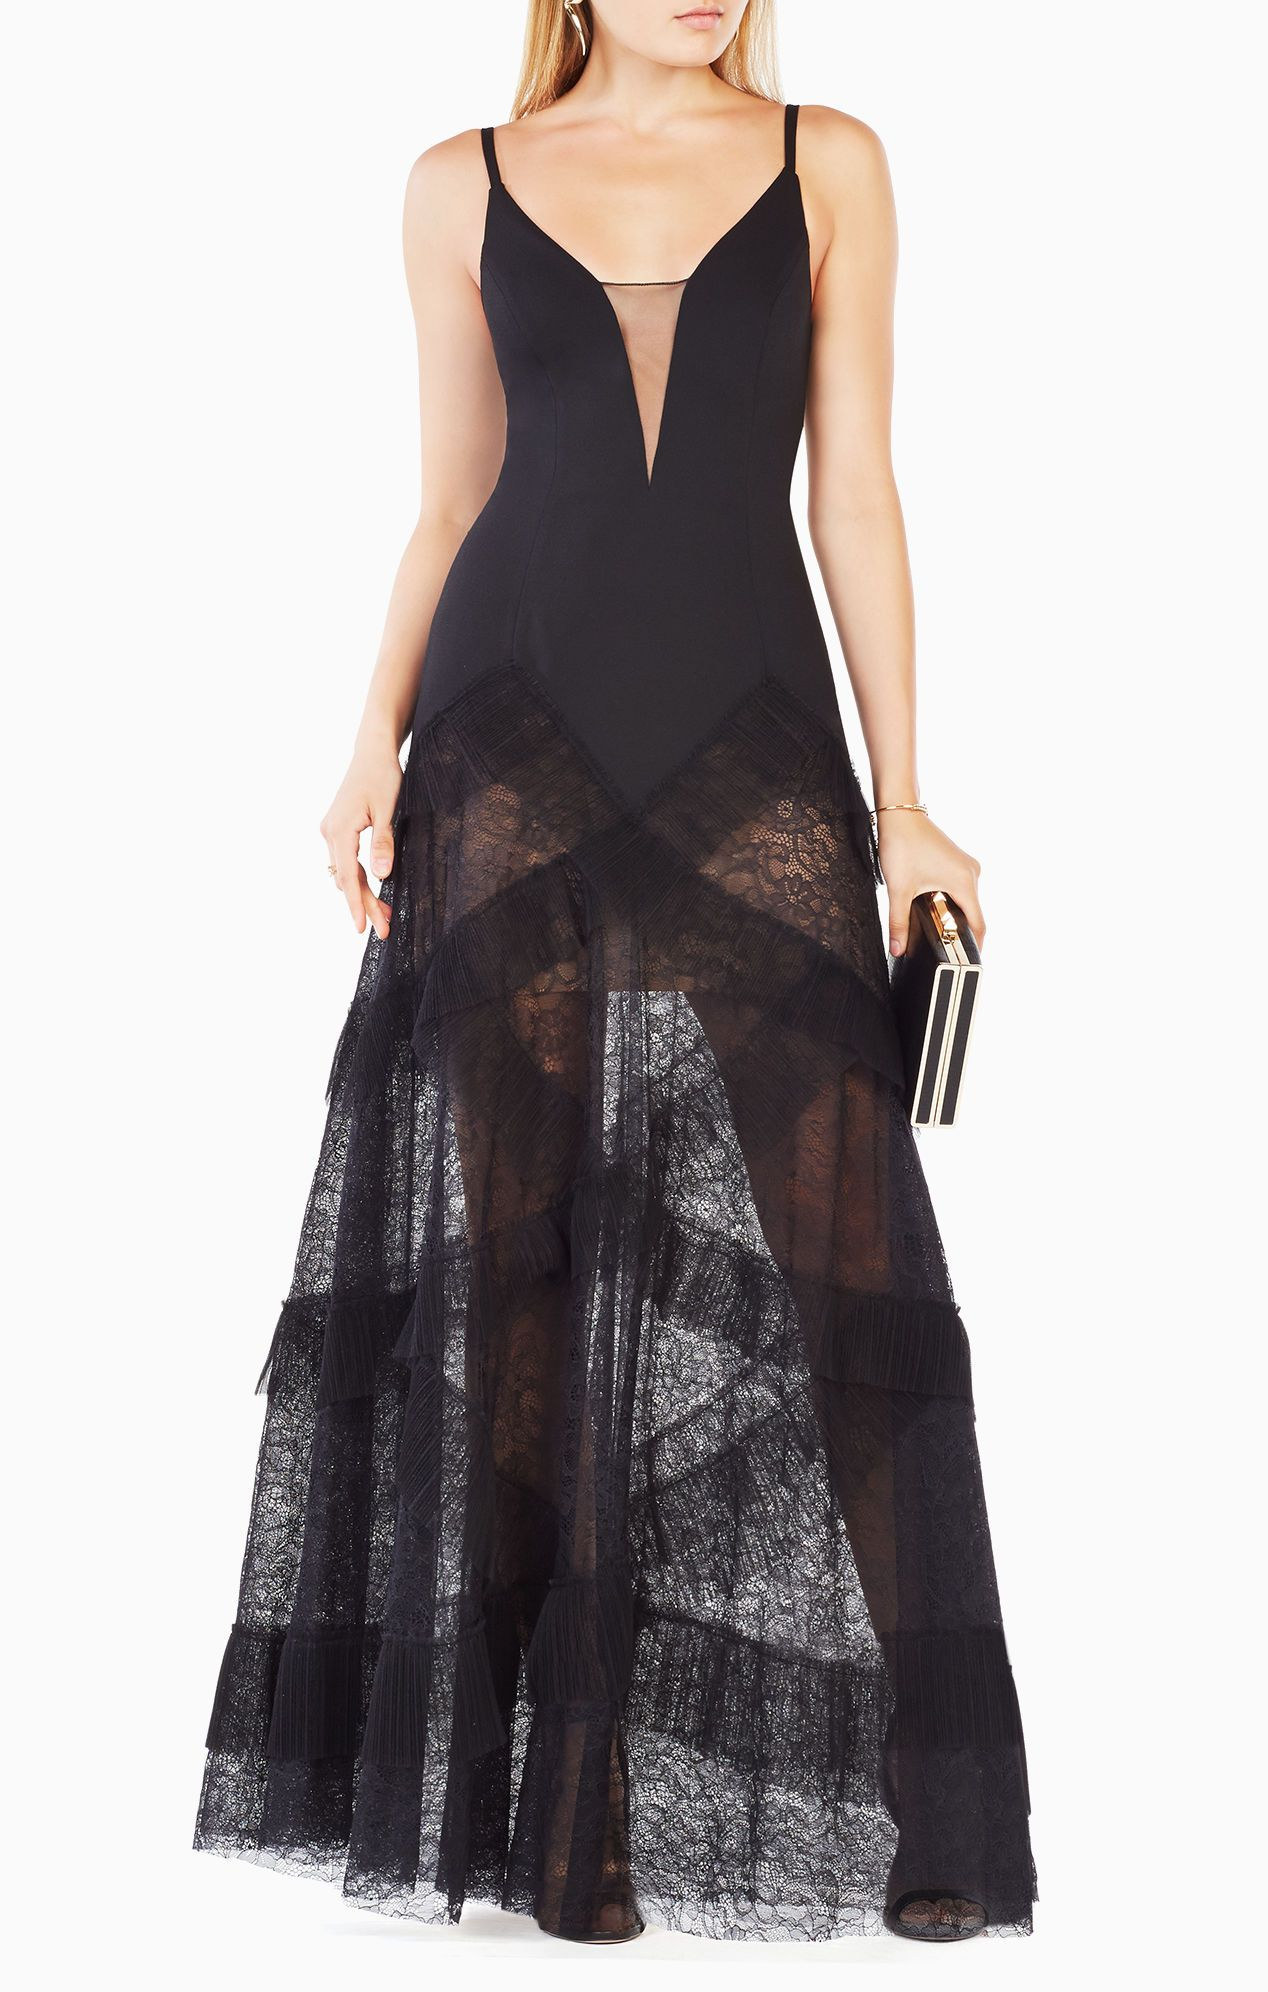 39c8c4532b48 Avaline Pleated Gown Gorgeous detail and love the sheer lace bottom ...